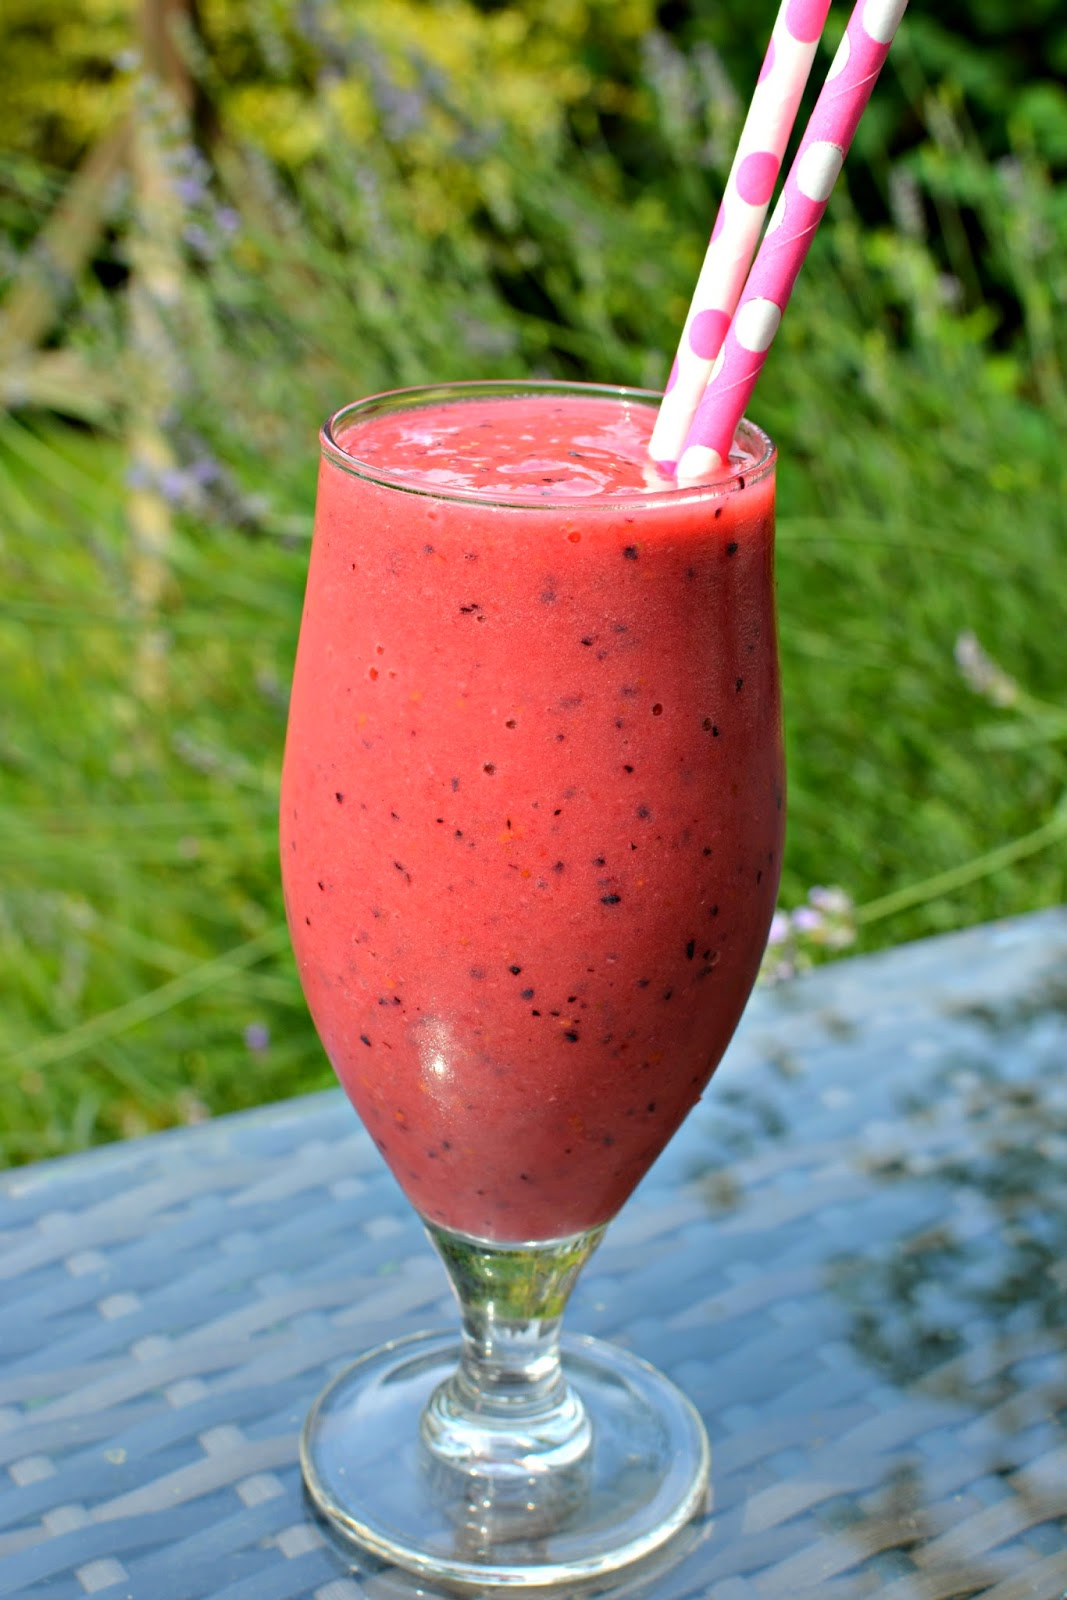 banana and berry smoothie recipe